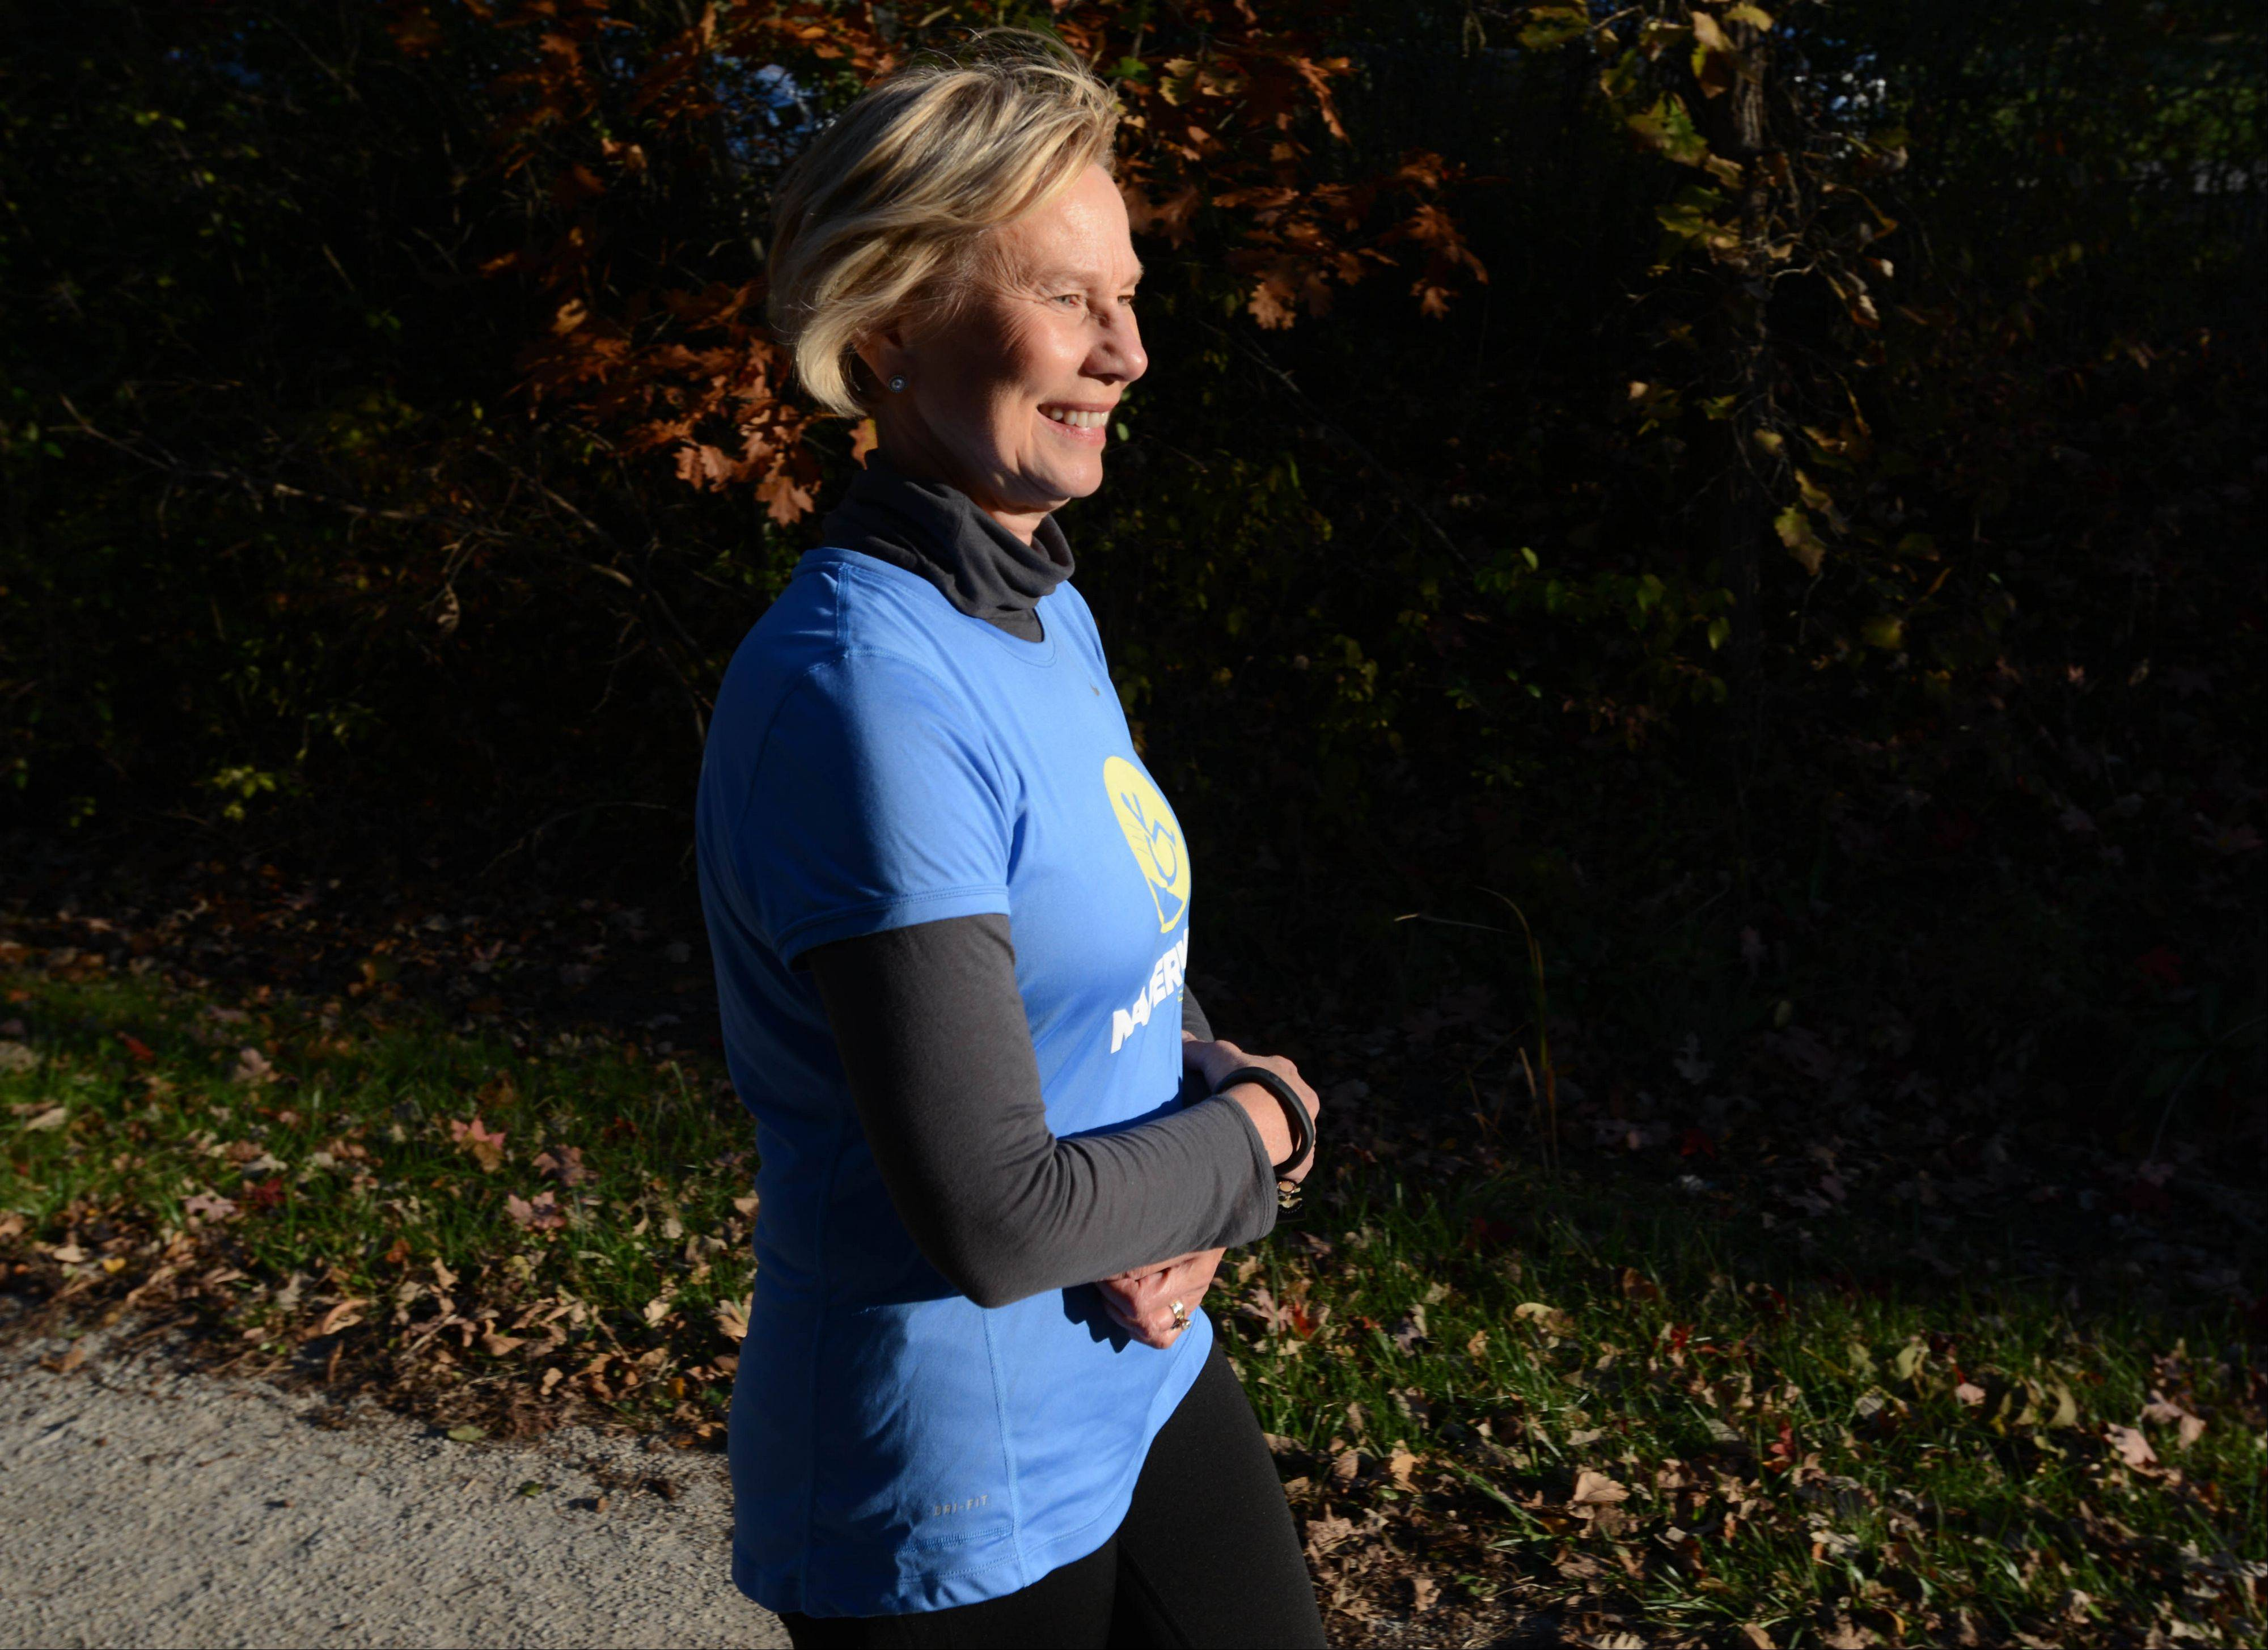 Ginni Kent of Glen Ellyn trains for her first half marathon along the Illinois Prairie Path in Wheaton. She is running to support Spinal Cord Injury Sucks, which her son, Geoff, started after being paralyzed from the chest down in a 2007 downhill skiing accident.